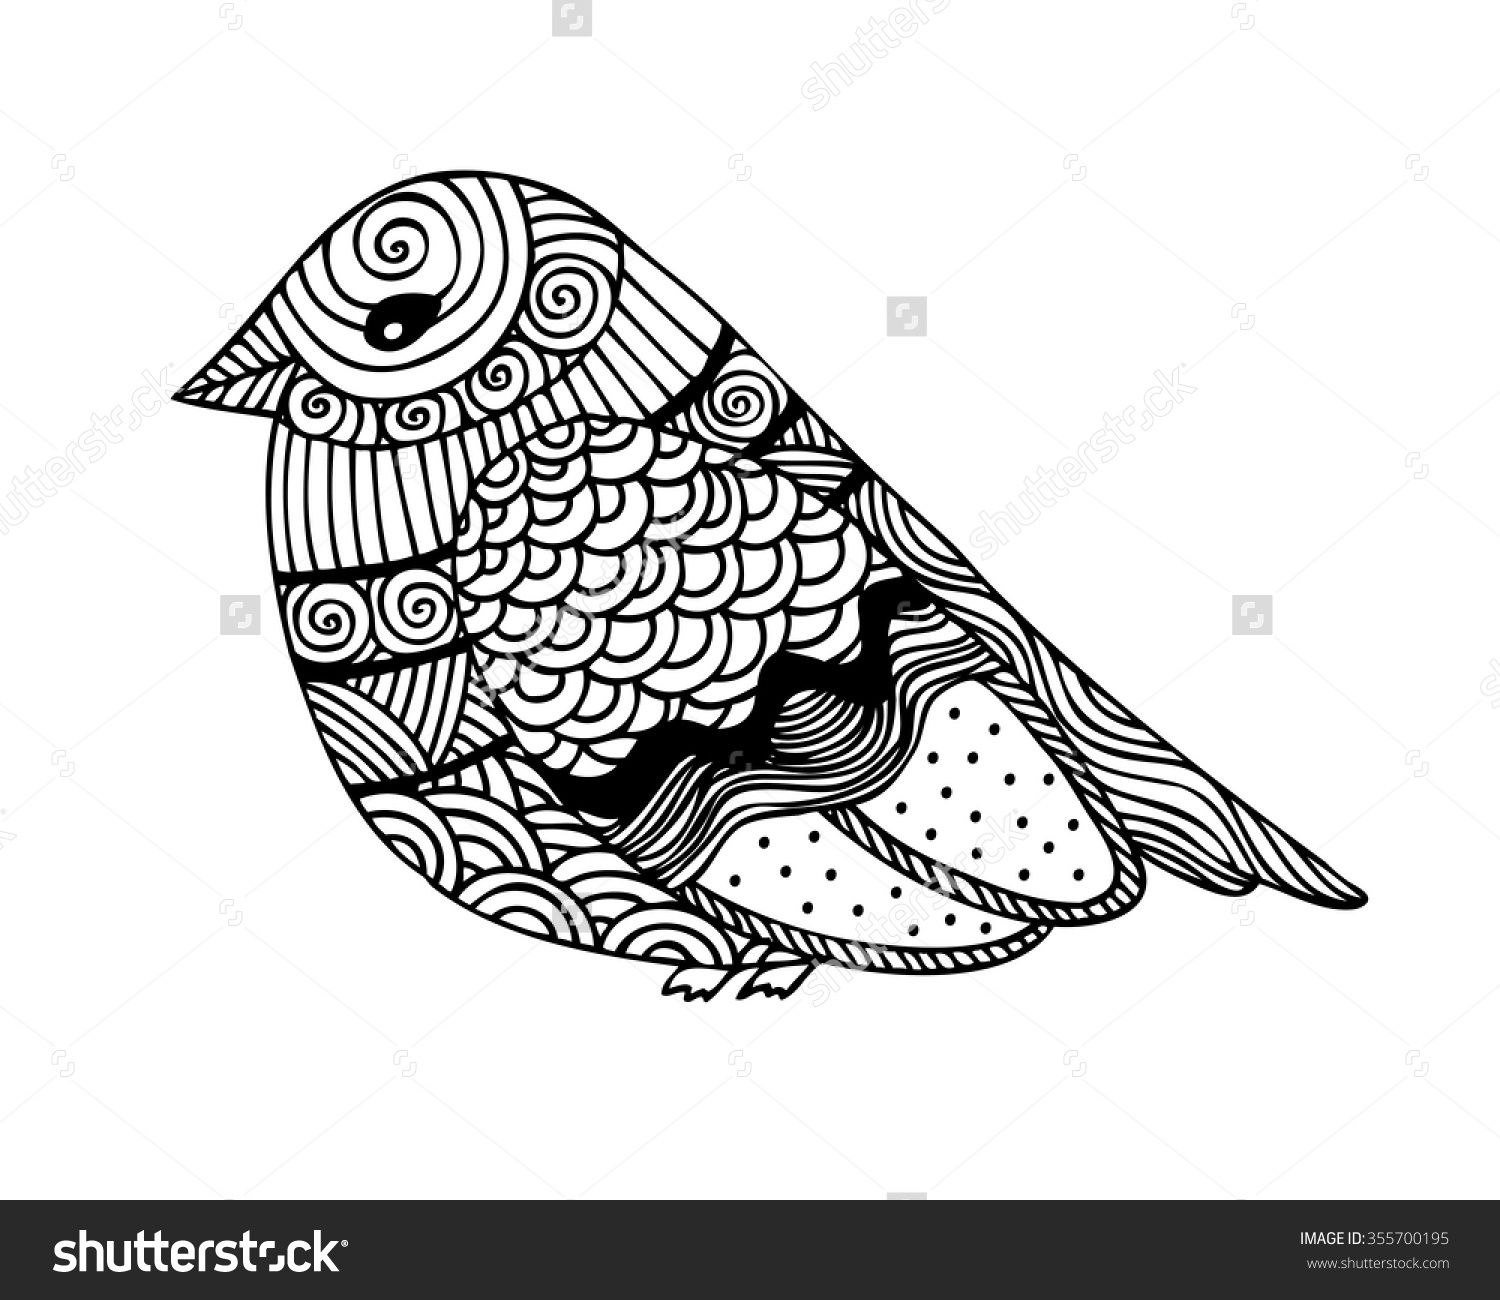 Adult Coloring Pages Sparrows